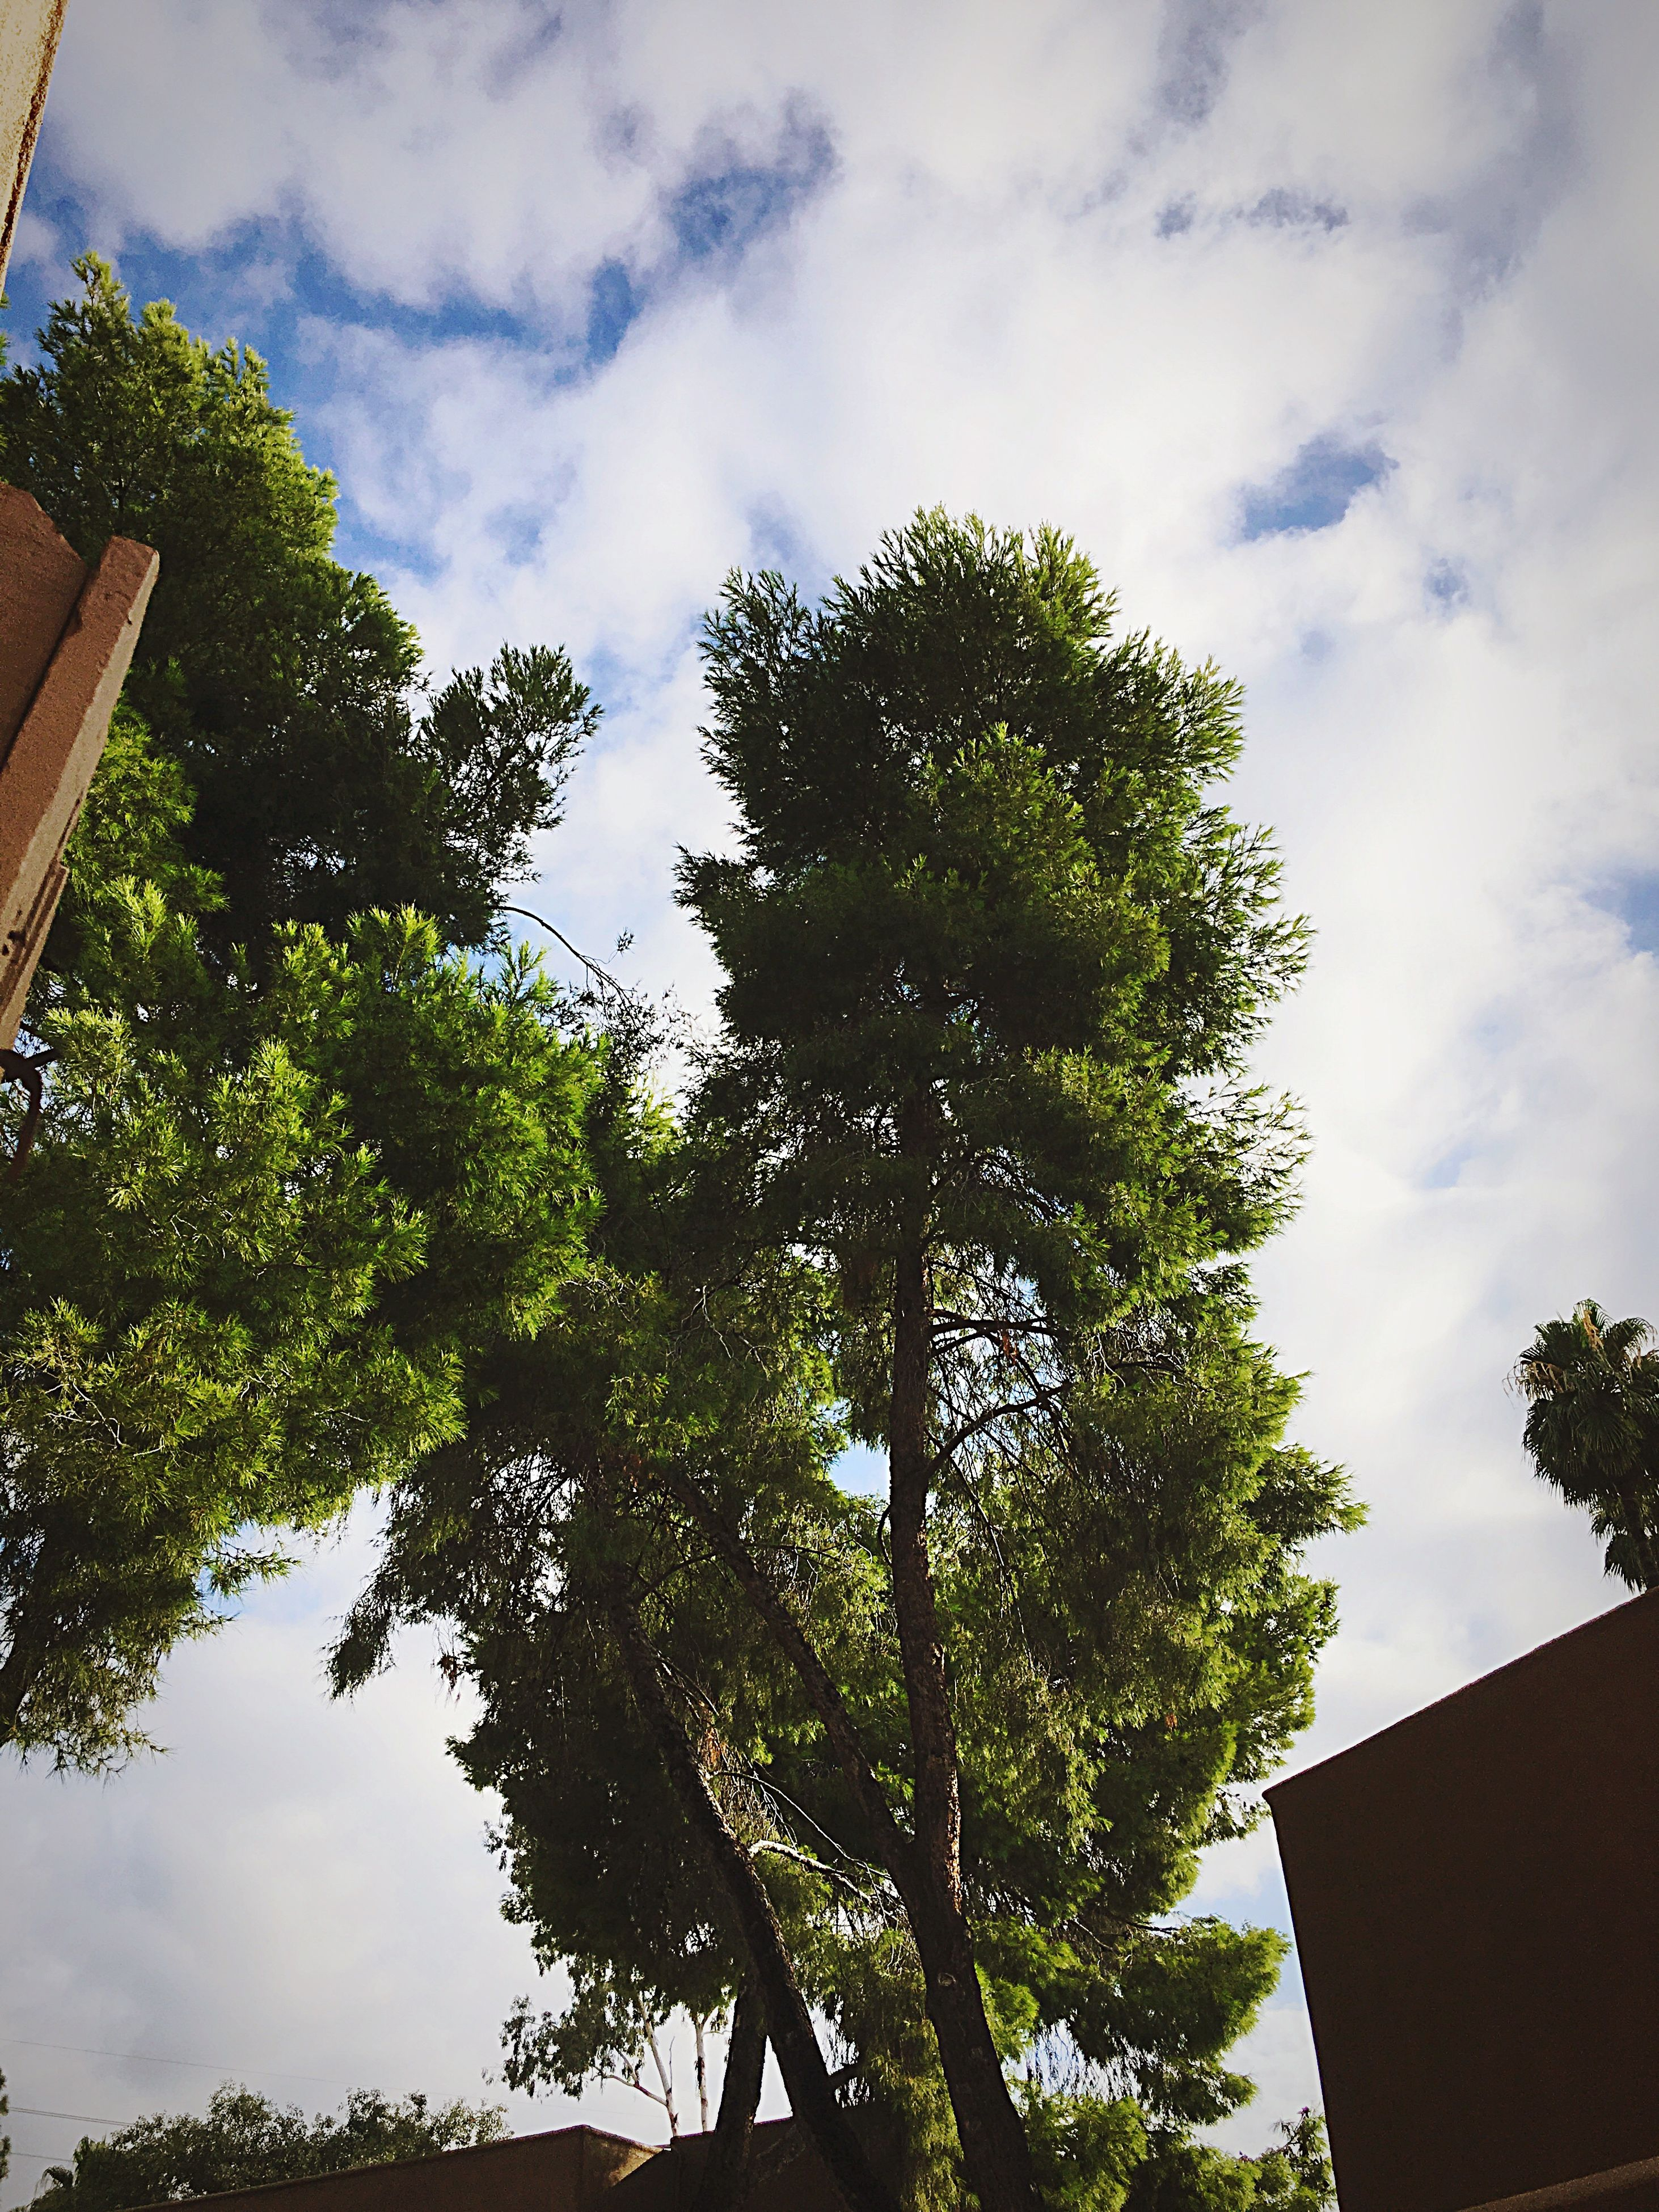 tree, low angle view, sky, growth, branch, tree trunk, cloud - sky, green, nature, day, scenics, cloud, tranquility, green color, outdoors, tranquil scene, beauty in nature, cloudy, treetop, lush foliage, tall - high, no people